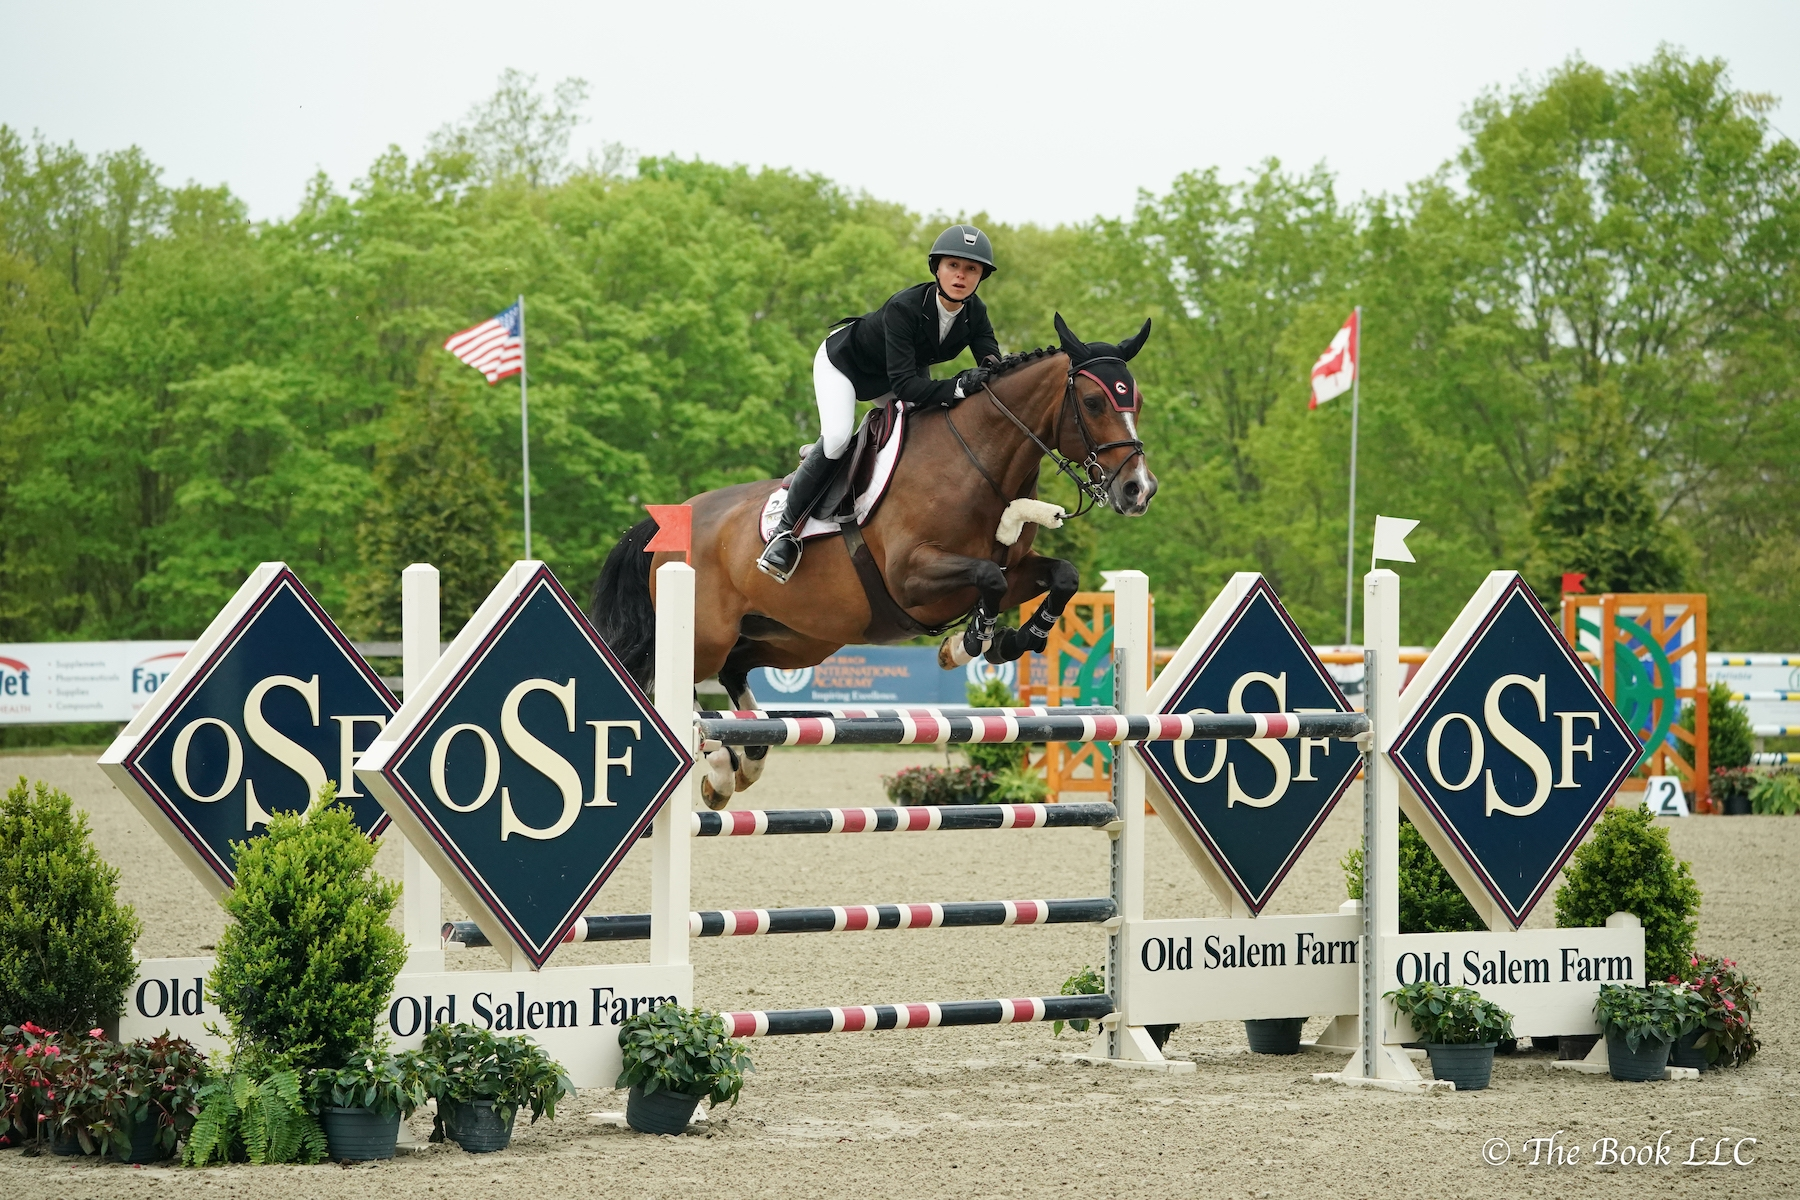 Georgina Bloomberg (USA) and Gotham Enterprizes homebred South Street won the $6,500 Open Jumper 1.35m on Friday, May 10, during the 2019 Old Salem Farm Spring Horse Shows at Old Salem Farm in North Salem, NY.<br><b>Photo by <a href='http://www.thebookllc.com/'target='_blank'>The Book</a></b>